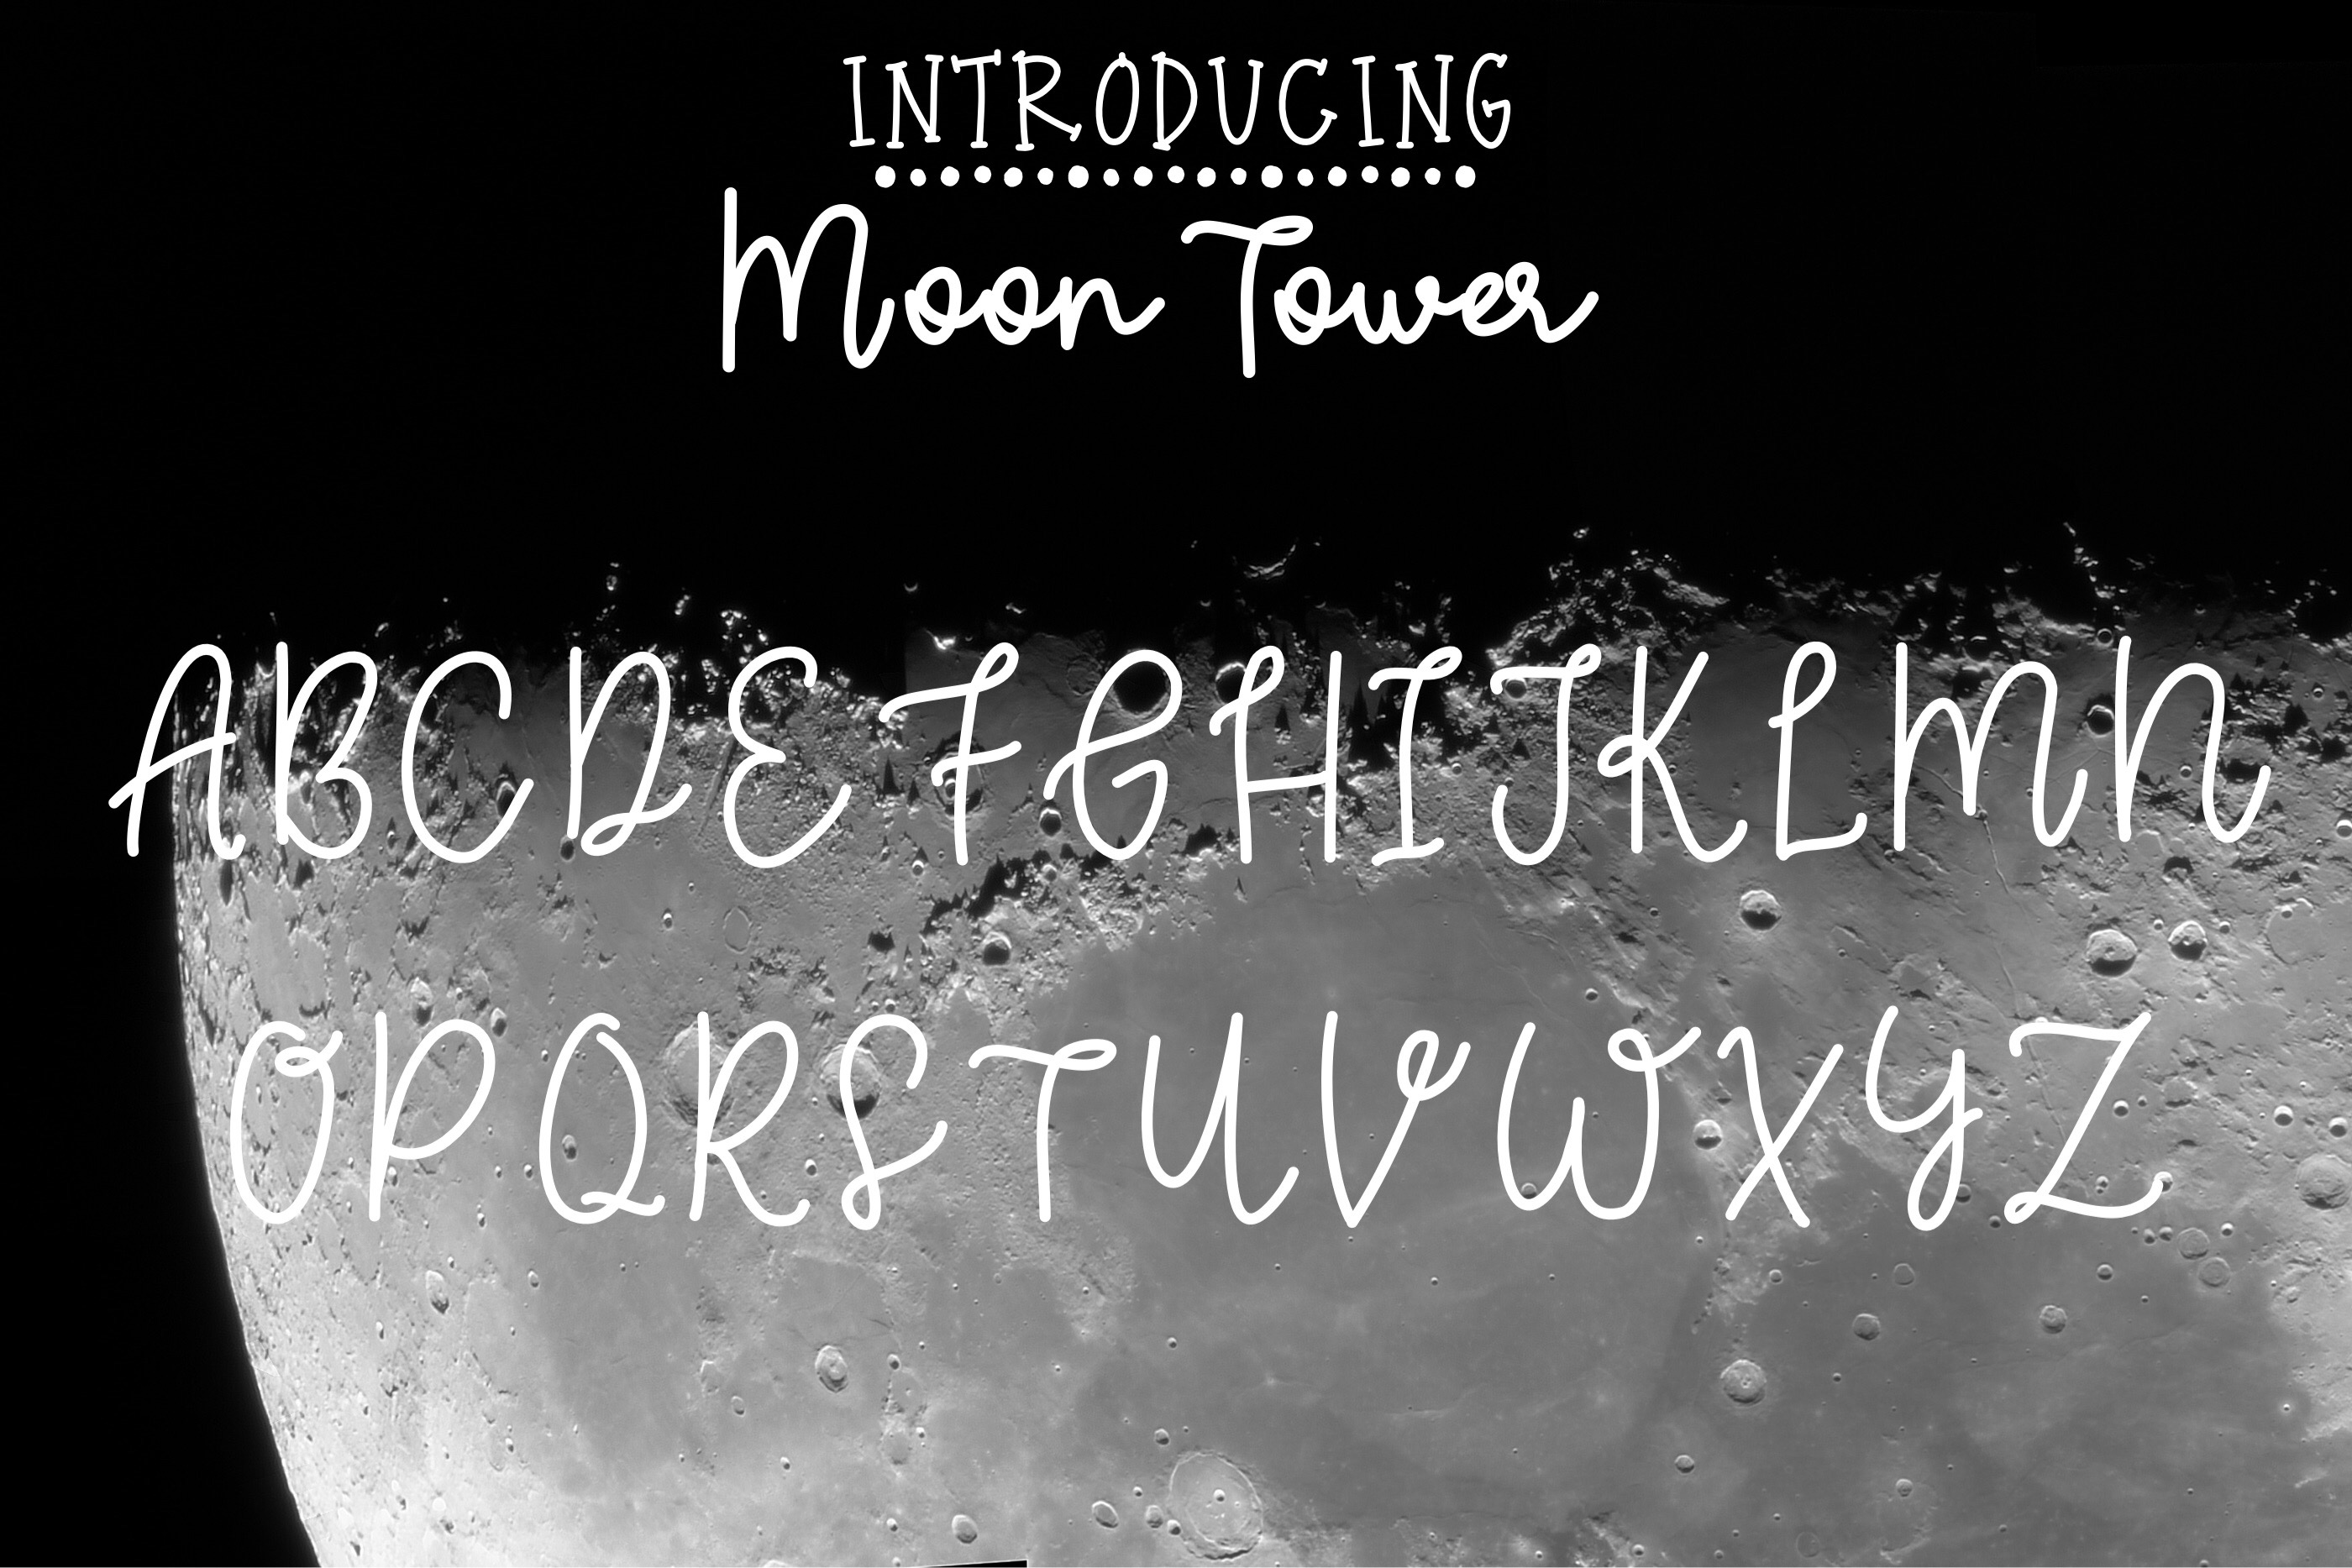 Moon Tower example image 2